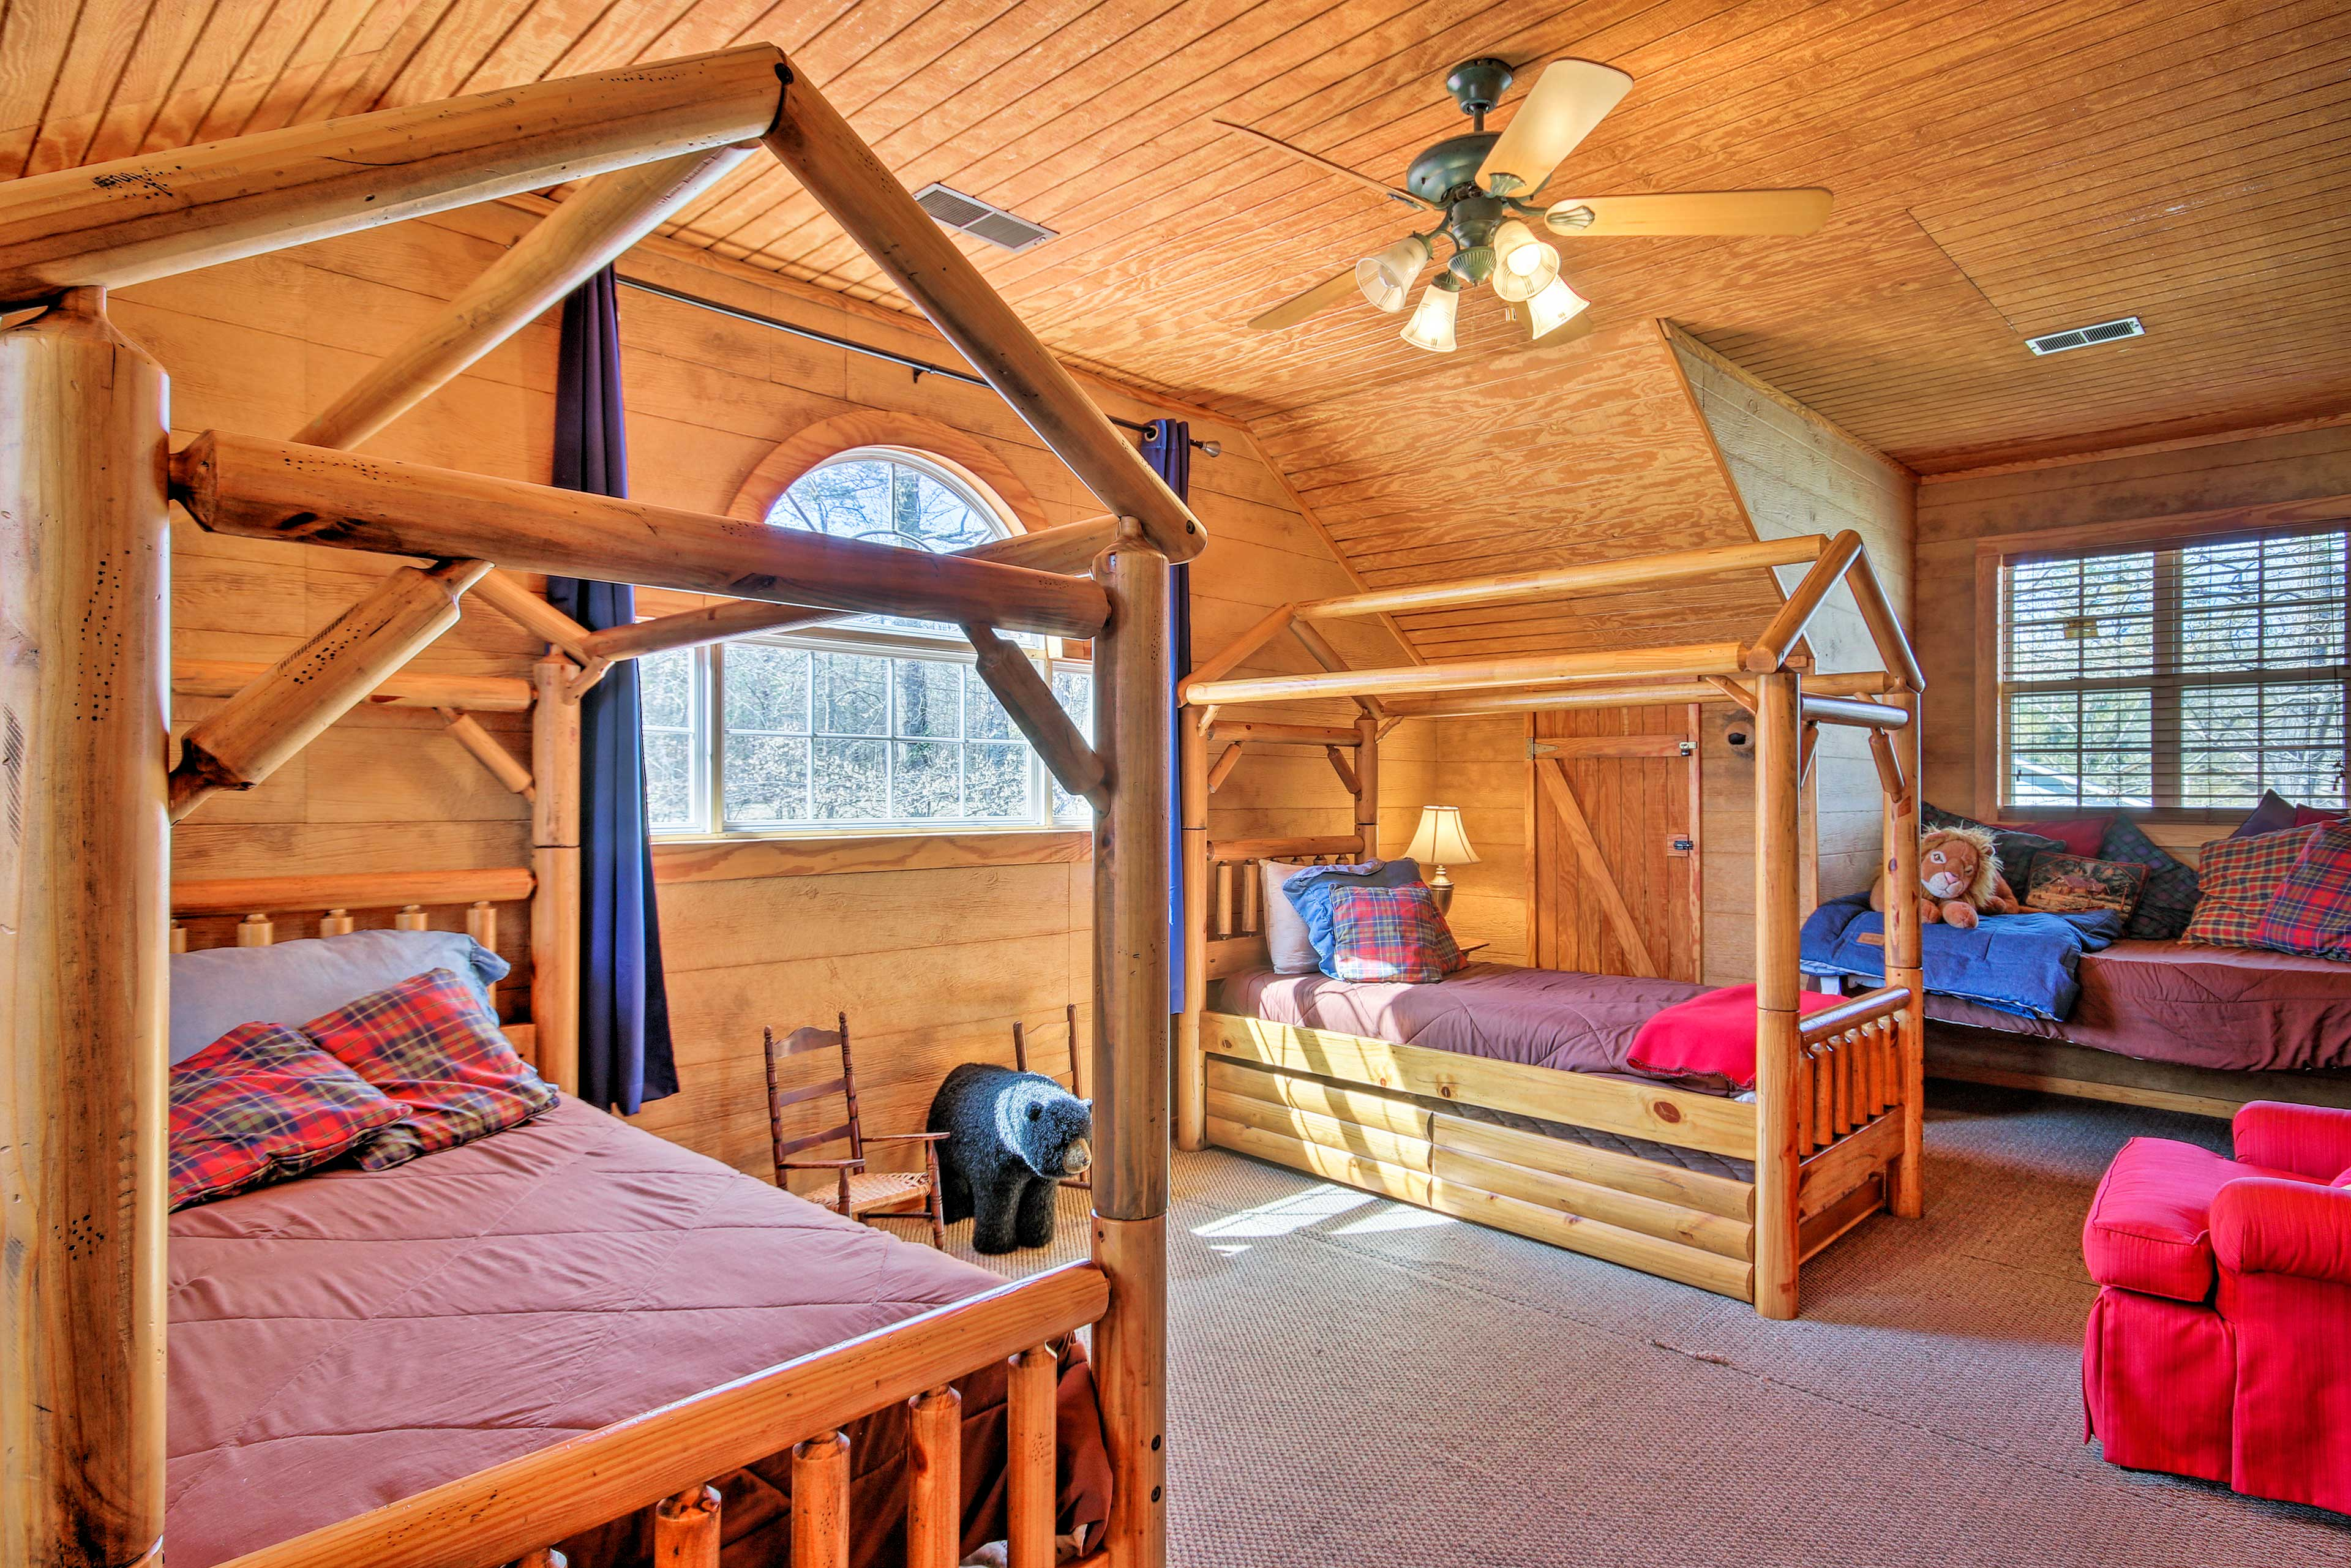 This room includes 4 twin beds.